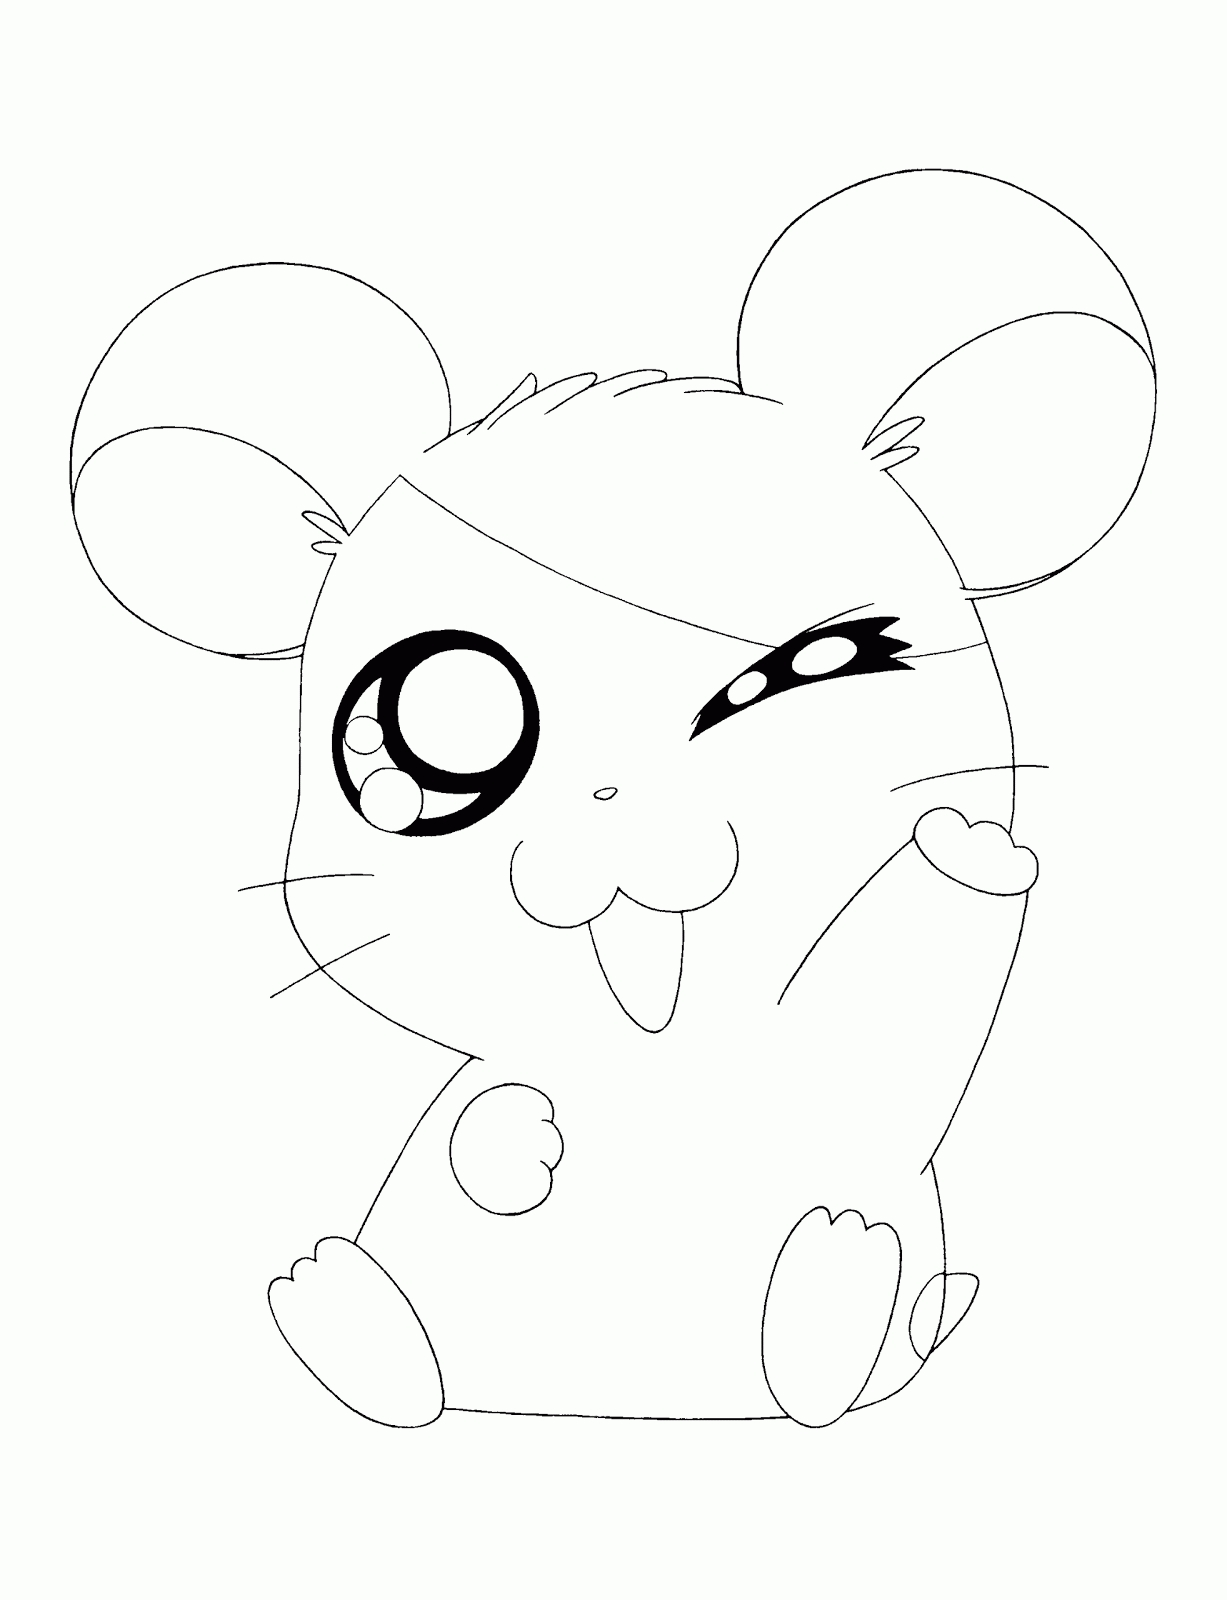 printable princess coloring pages - hamtaro cute animals coloring pages